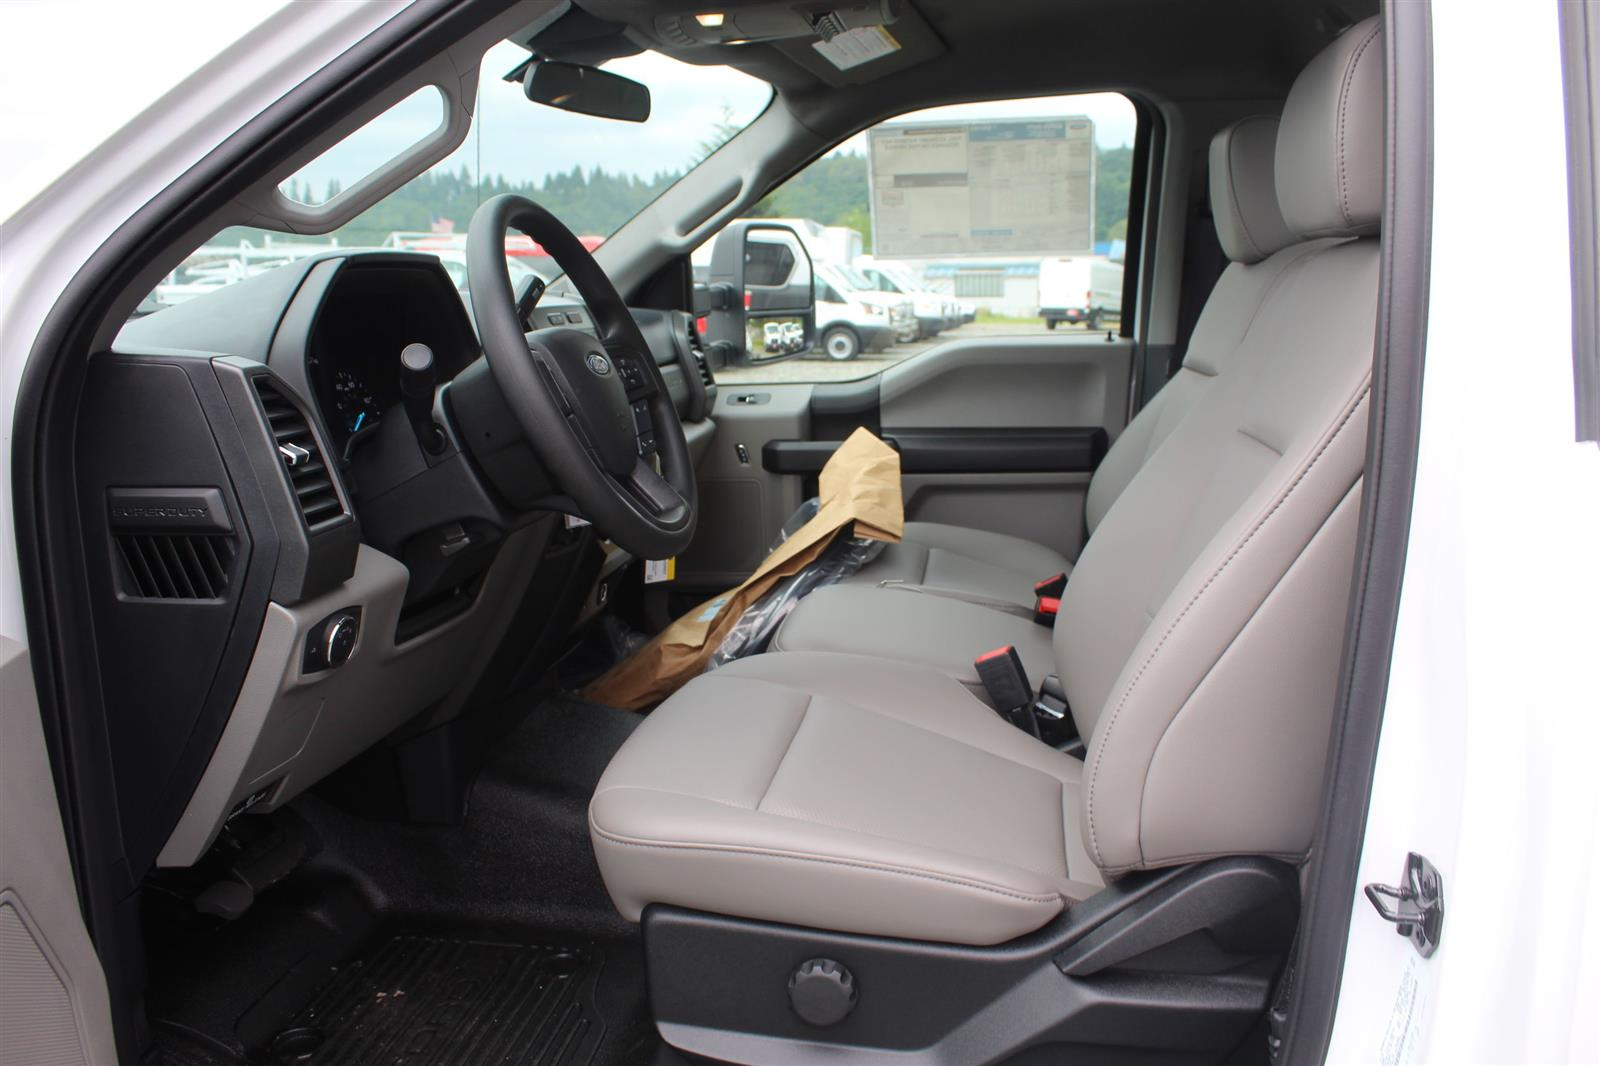 2020 Ford F-450 Regular Cab DRW 4x2, Cab Chassis #E9292 - photo 11